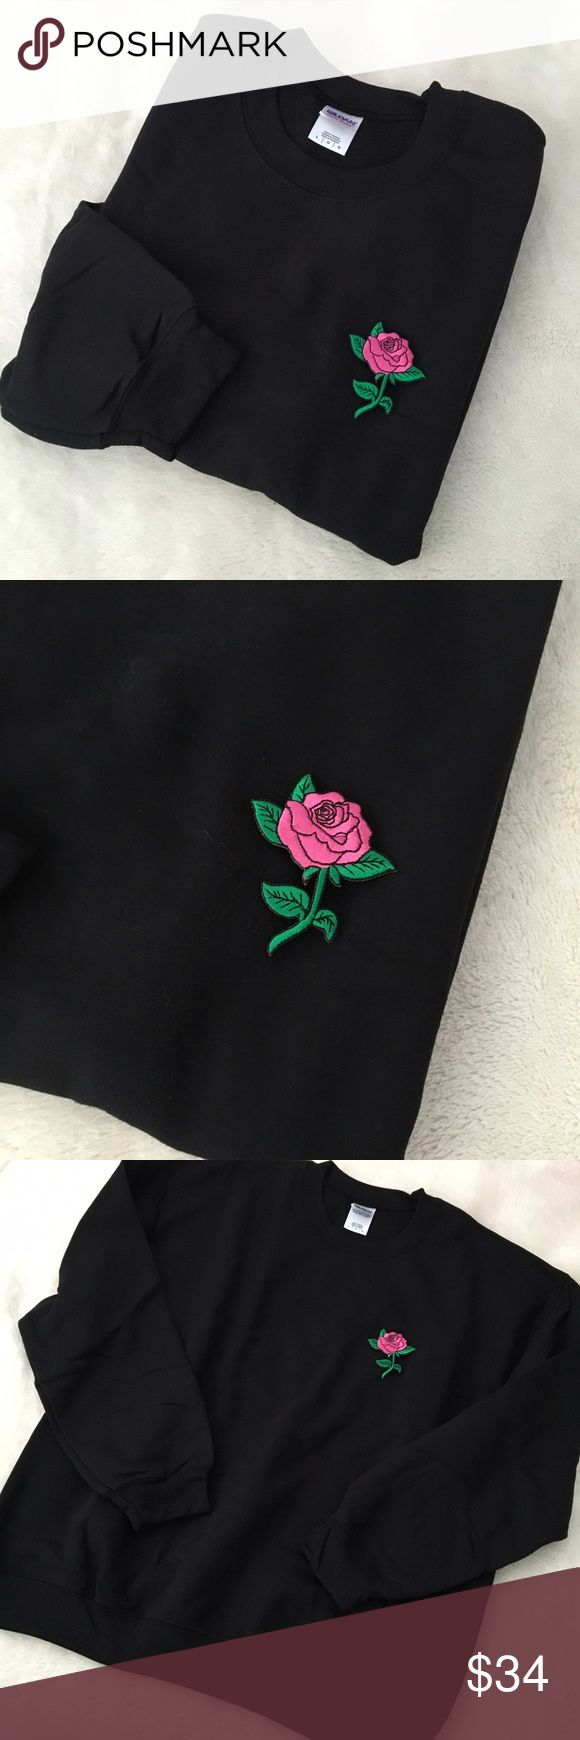 Black rose patch sweatshirt w/ pink rose unisex Black rose patch sweatshirt with pink rose  Handmade just for you! Currently out of stock, will be back soon! This crewneck sweatshirt has unisex fit with fuzzy interior. Oh so soft This sold out within minutes of posting to another site so there will be an extra 2 days processing time when ordered. Choose from S-XL. #rose #patch #embroidered #sweatshirt #crewneck #unisex #tumblr #aesthetic #spring Pixel Babe Sweaters Crewneck